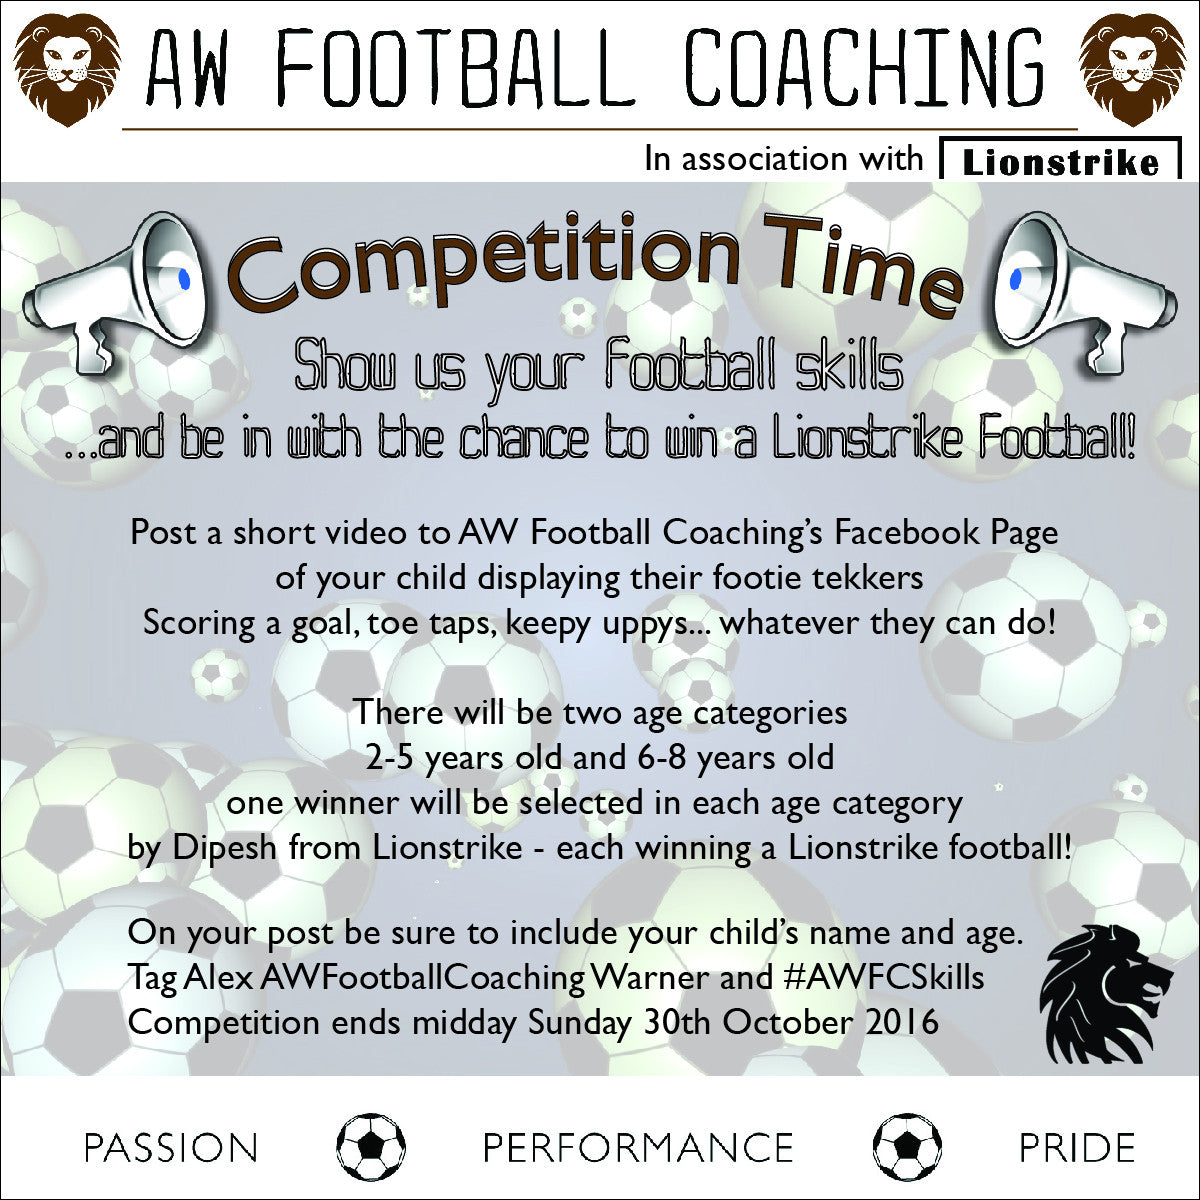 Win a Lionstrike Football with AW Football Coaching Competition!